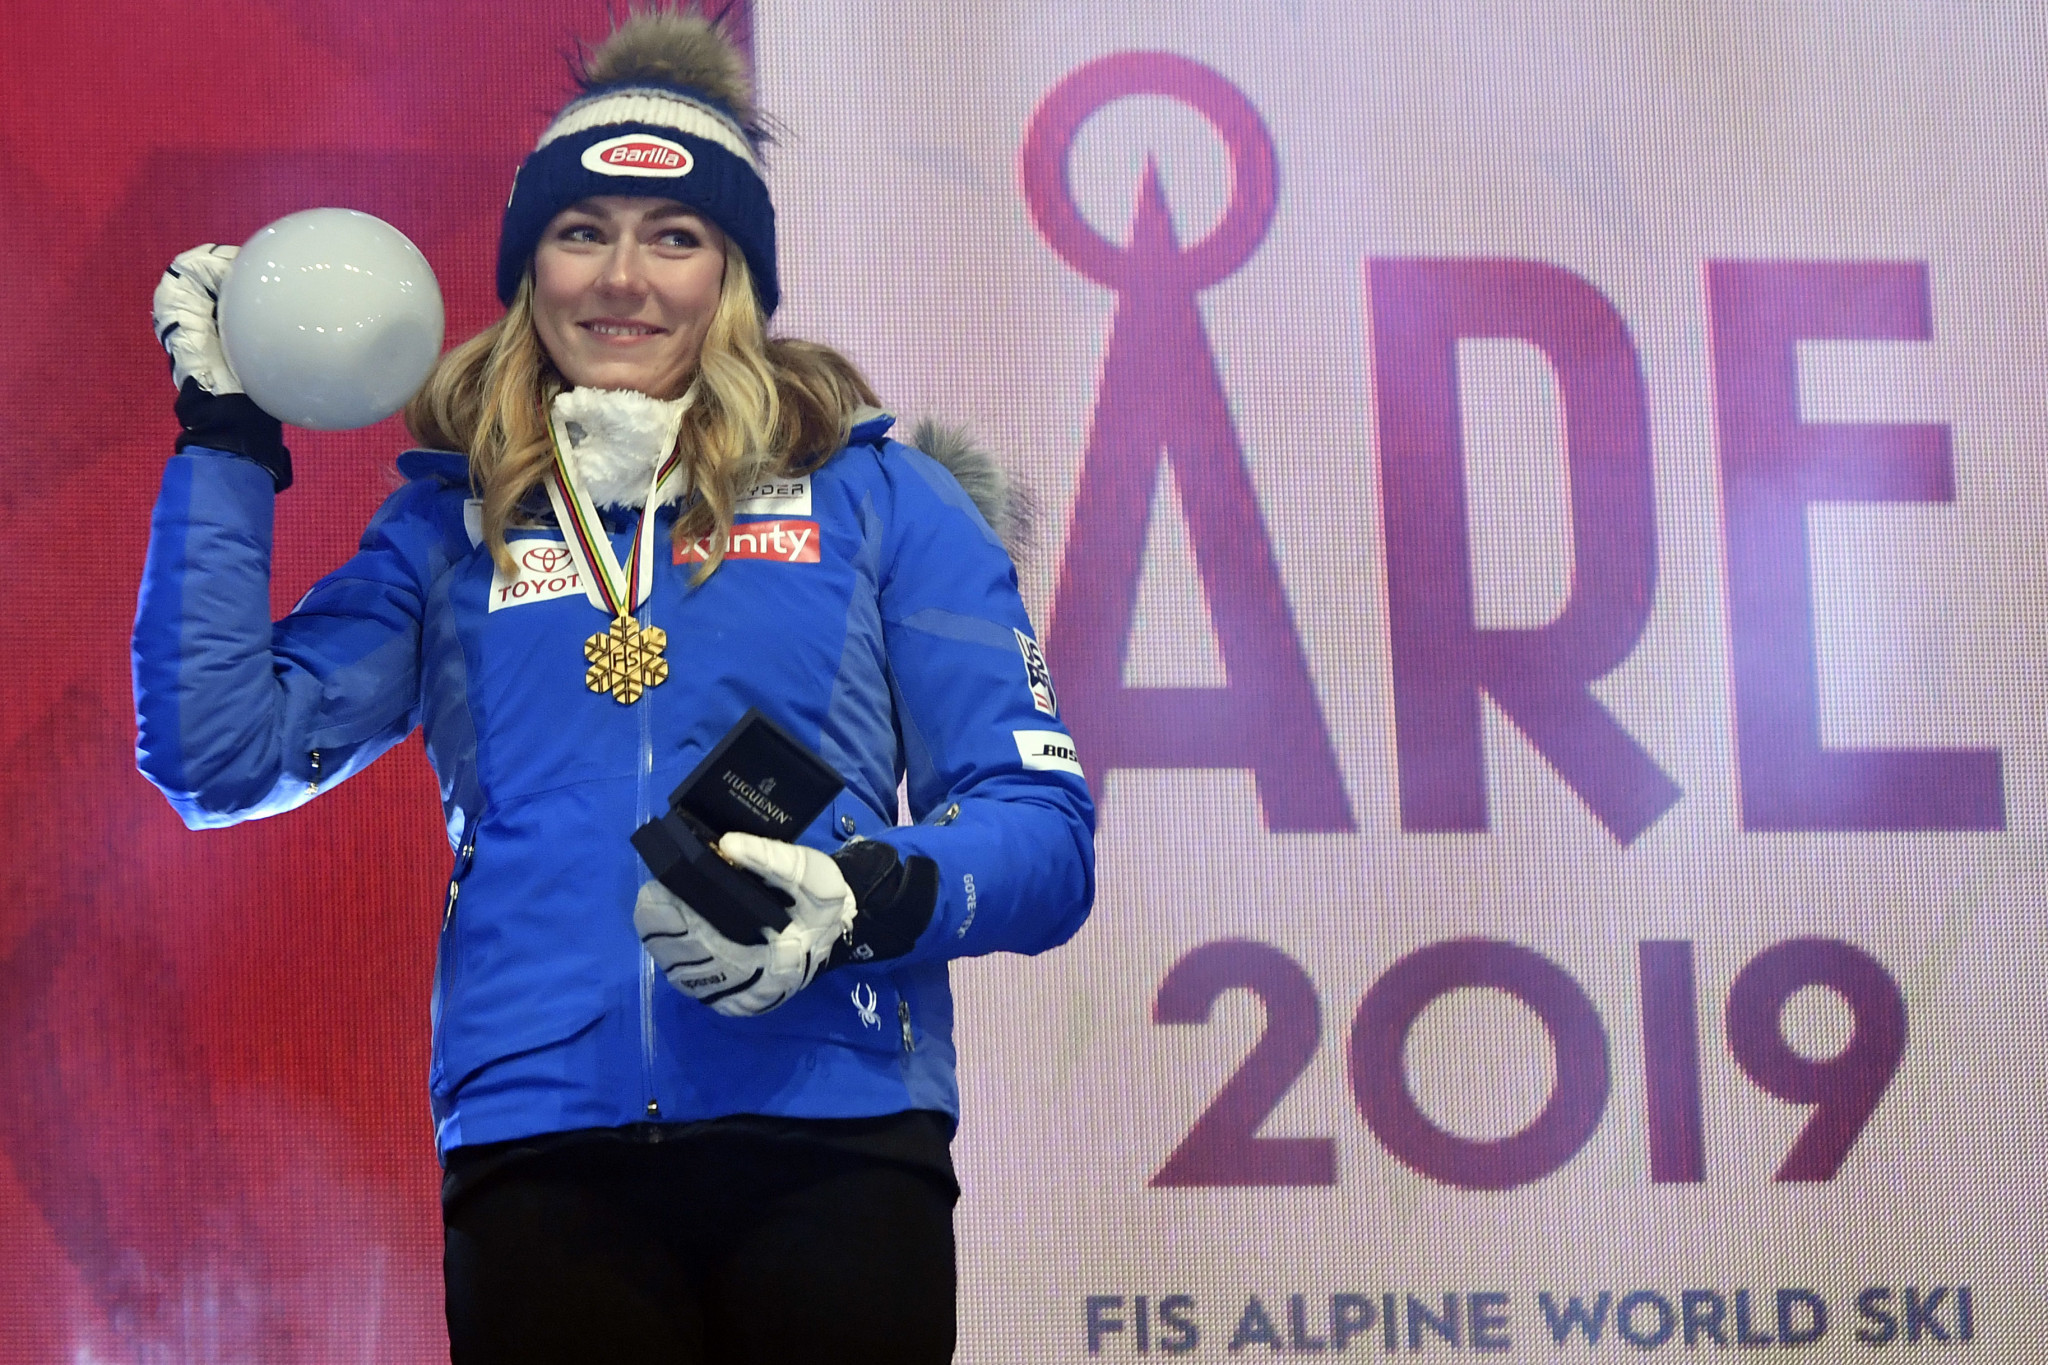 Mikaela Shiffrin clinched the world super-G title in Sweden in 2019 ©Getty Images